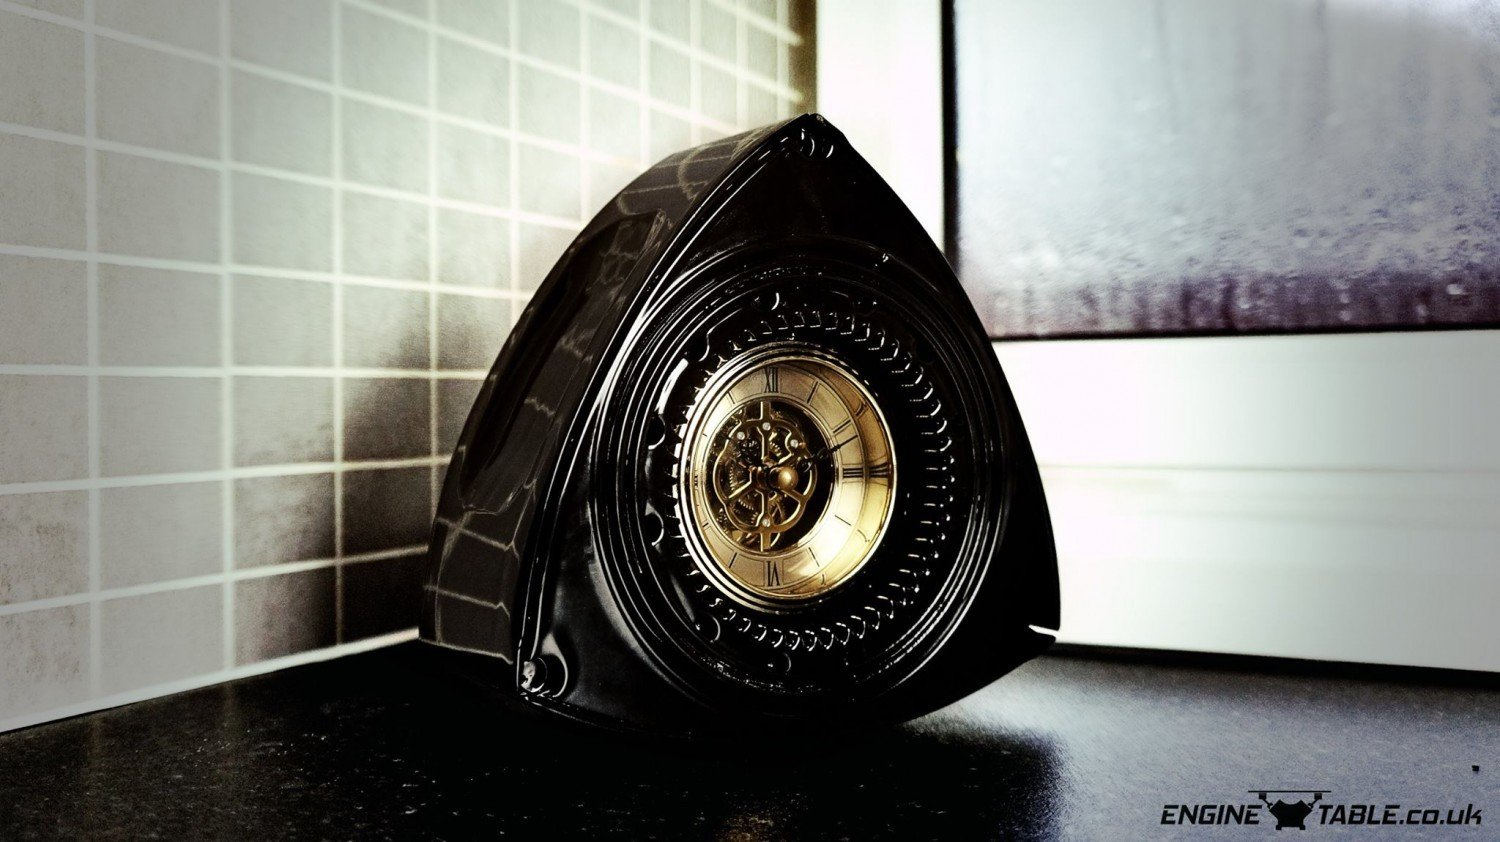 MAZDA RX8 192 GLOSS BLACK ROTOR CLOCK